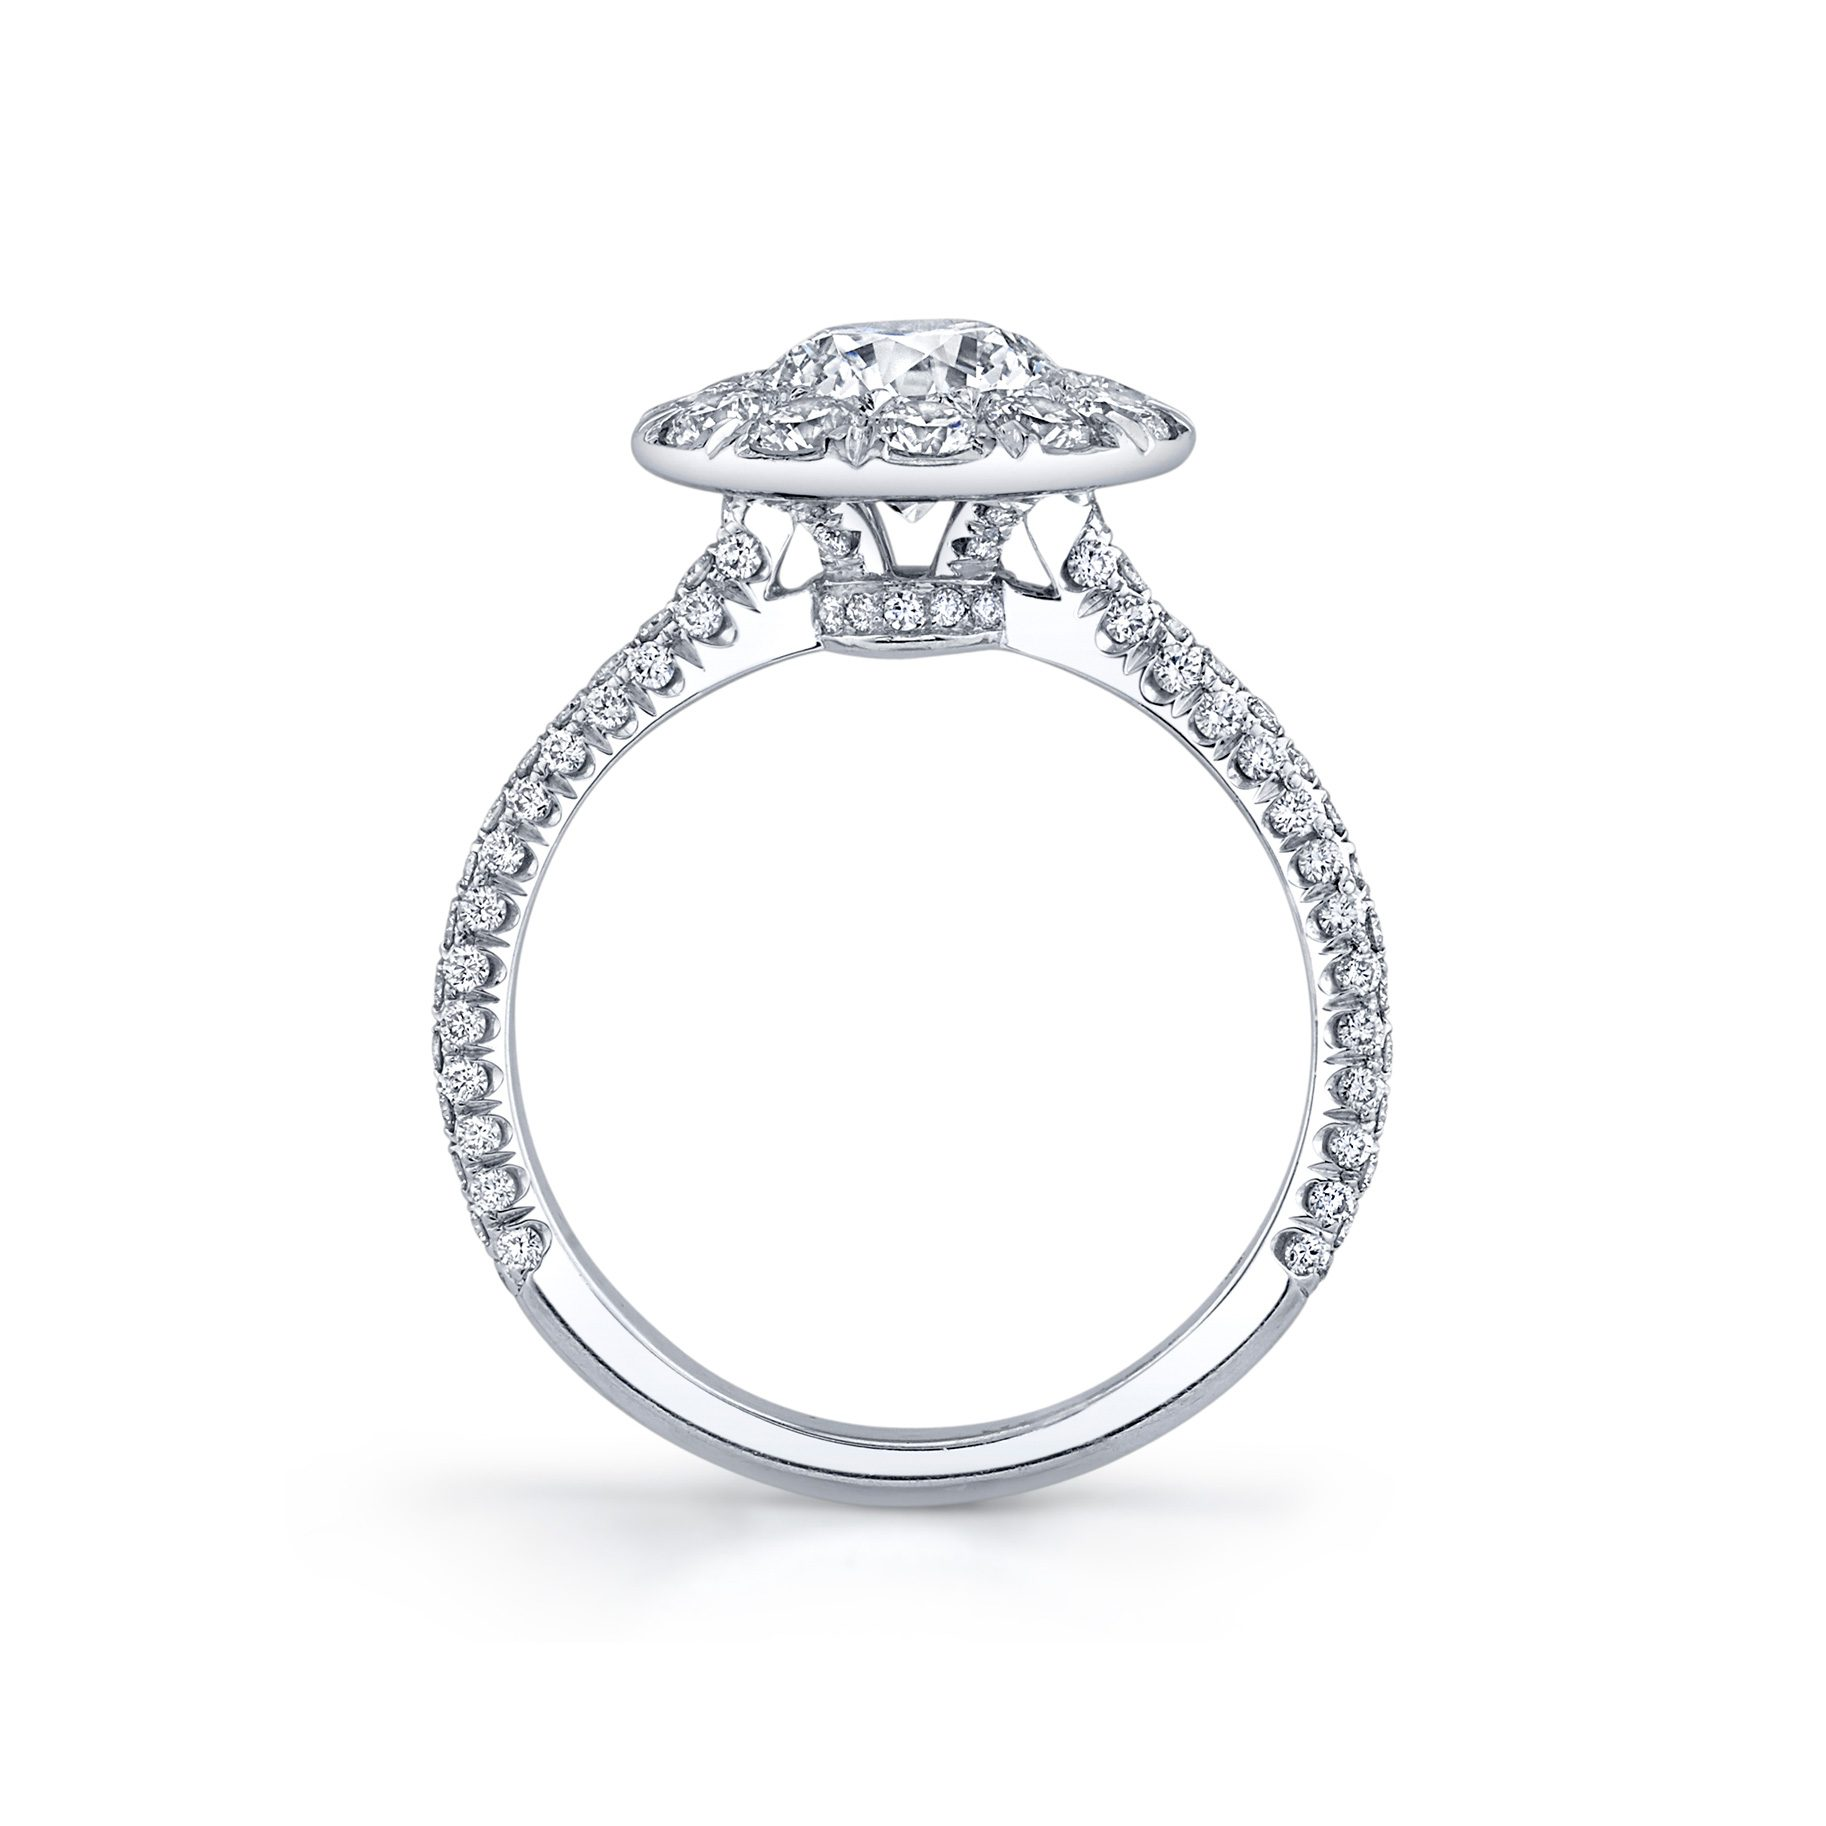 Jacqueline Round Brilliant Seamless Solitaire® Engagement Ring 18k White Gold Standing View by Oui by Jean Dousset